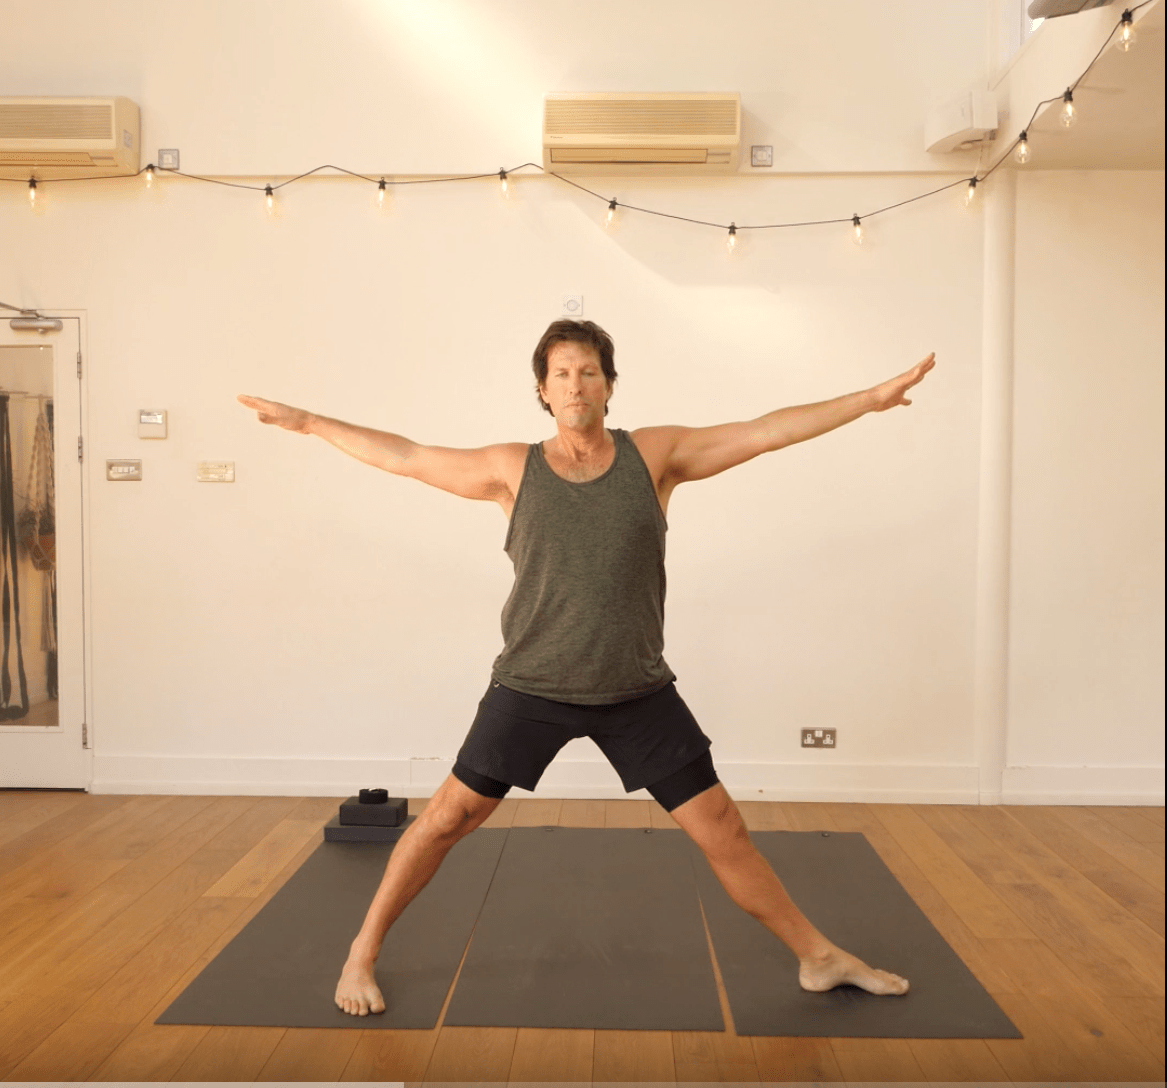 1 minute yoga standing sequence